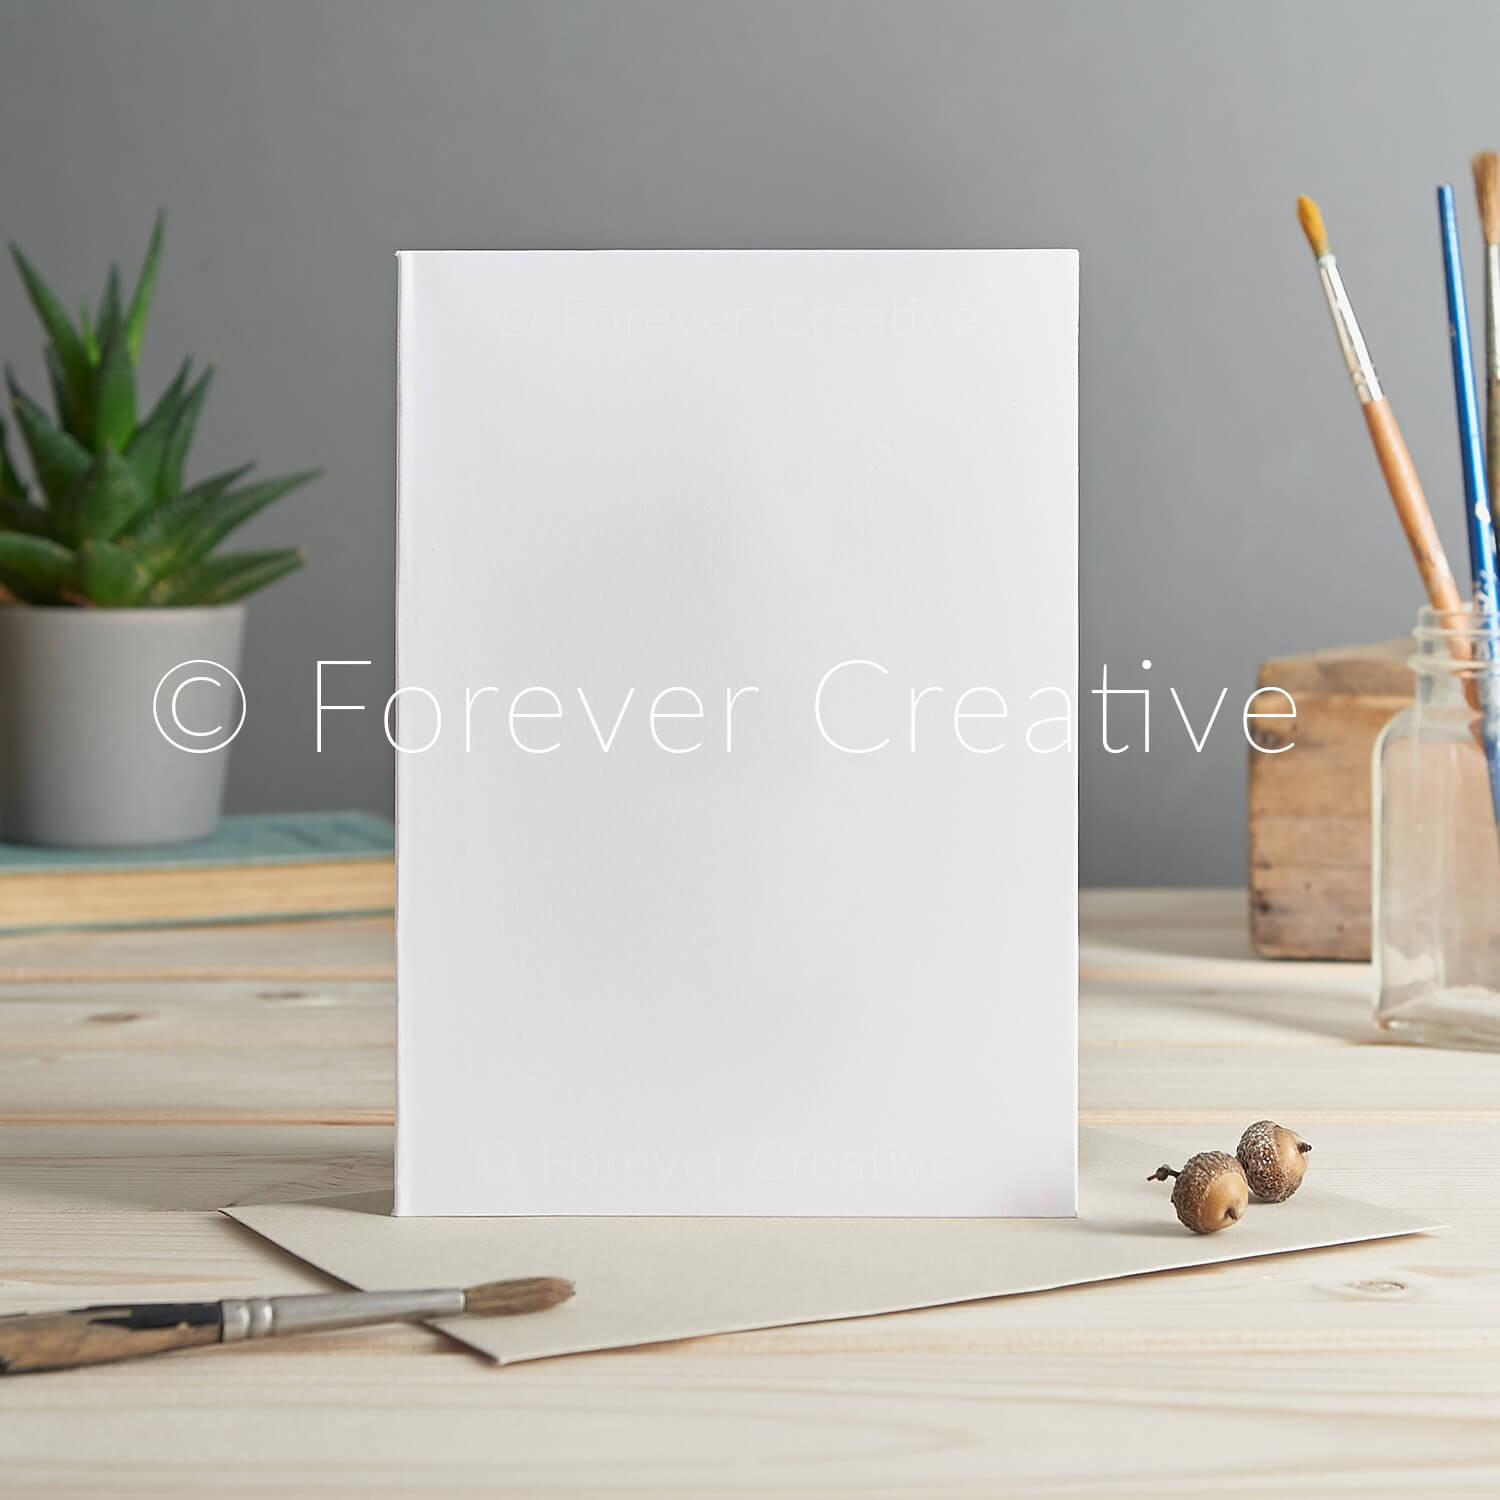 Stock photography for greetings card designers, blank card ready for superimposing of artwork in a setting